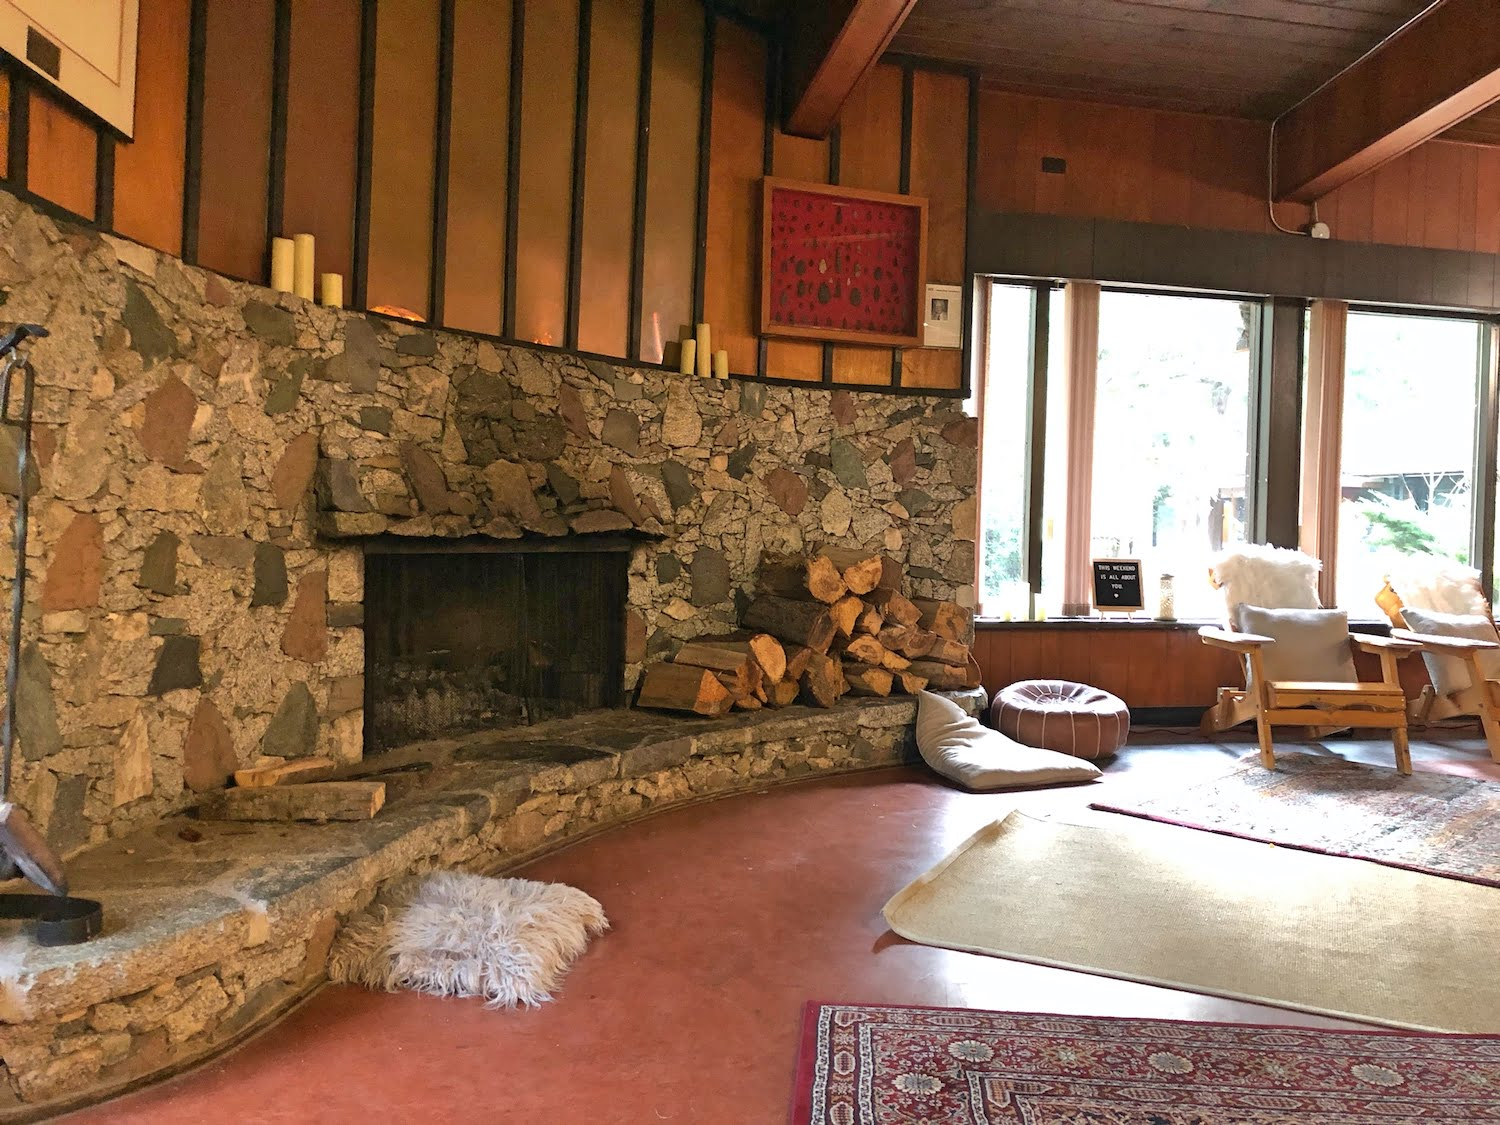 Cheakamus Centre Fireside Lounge